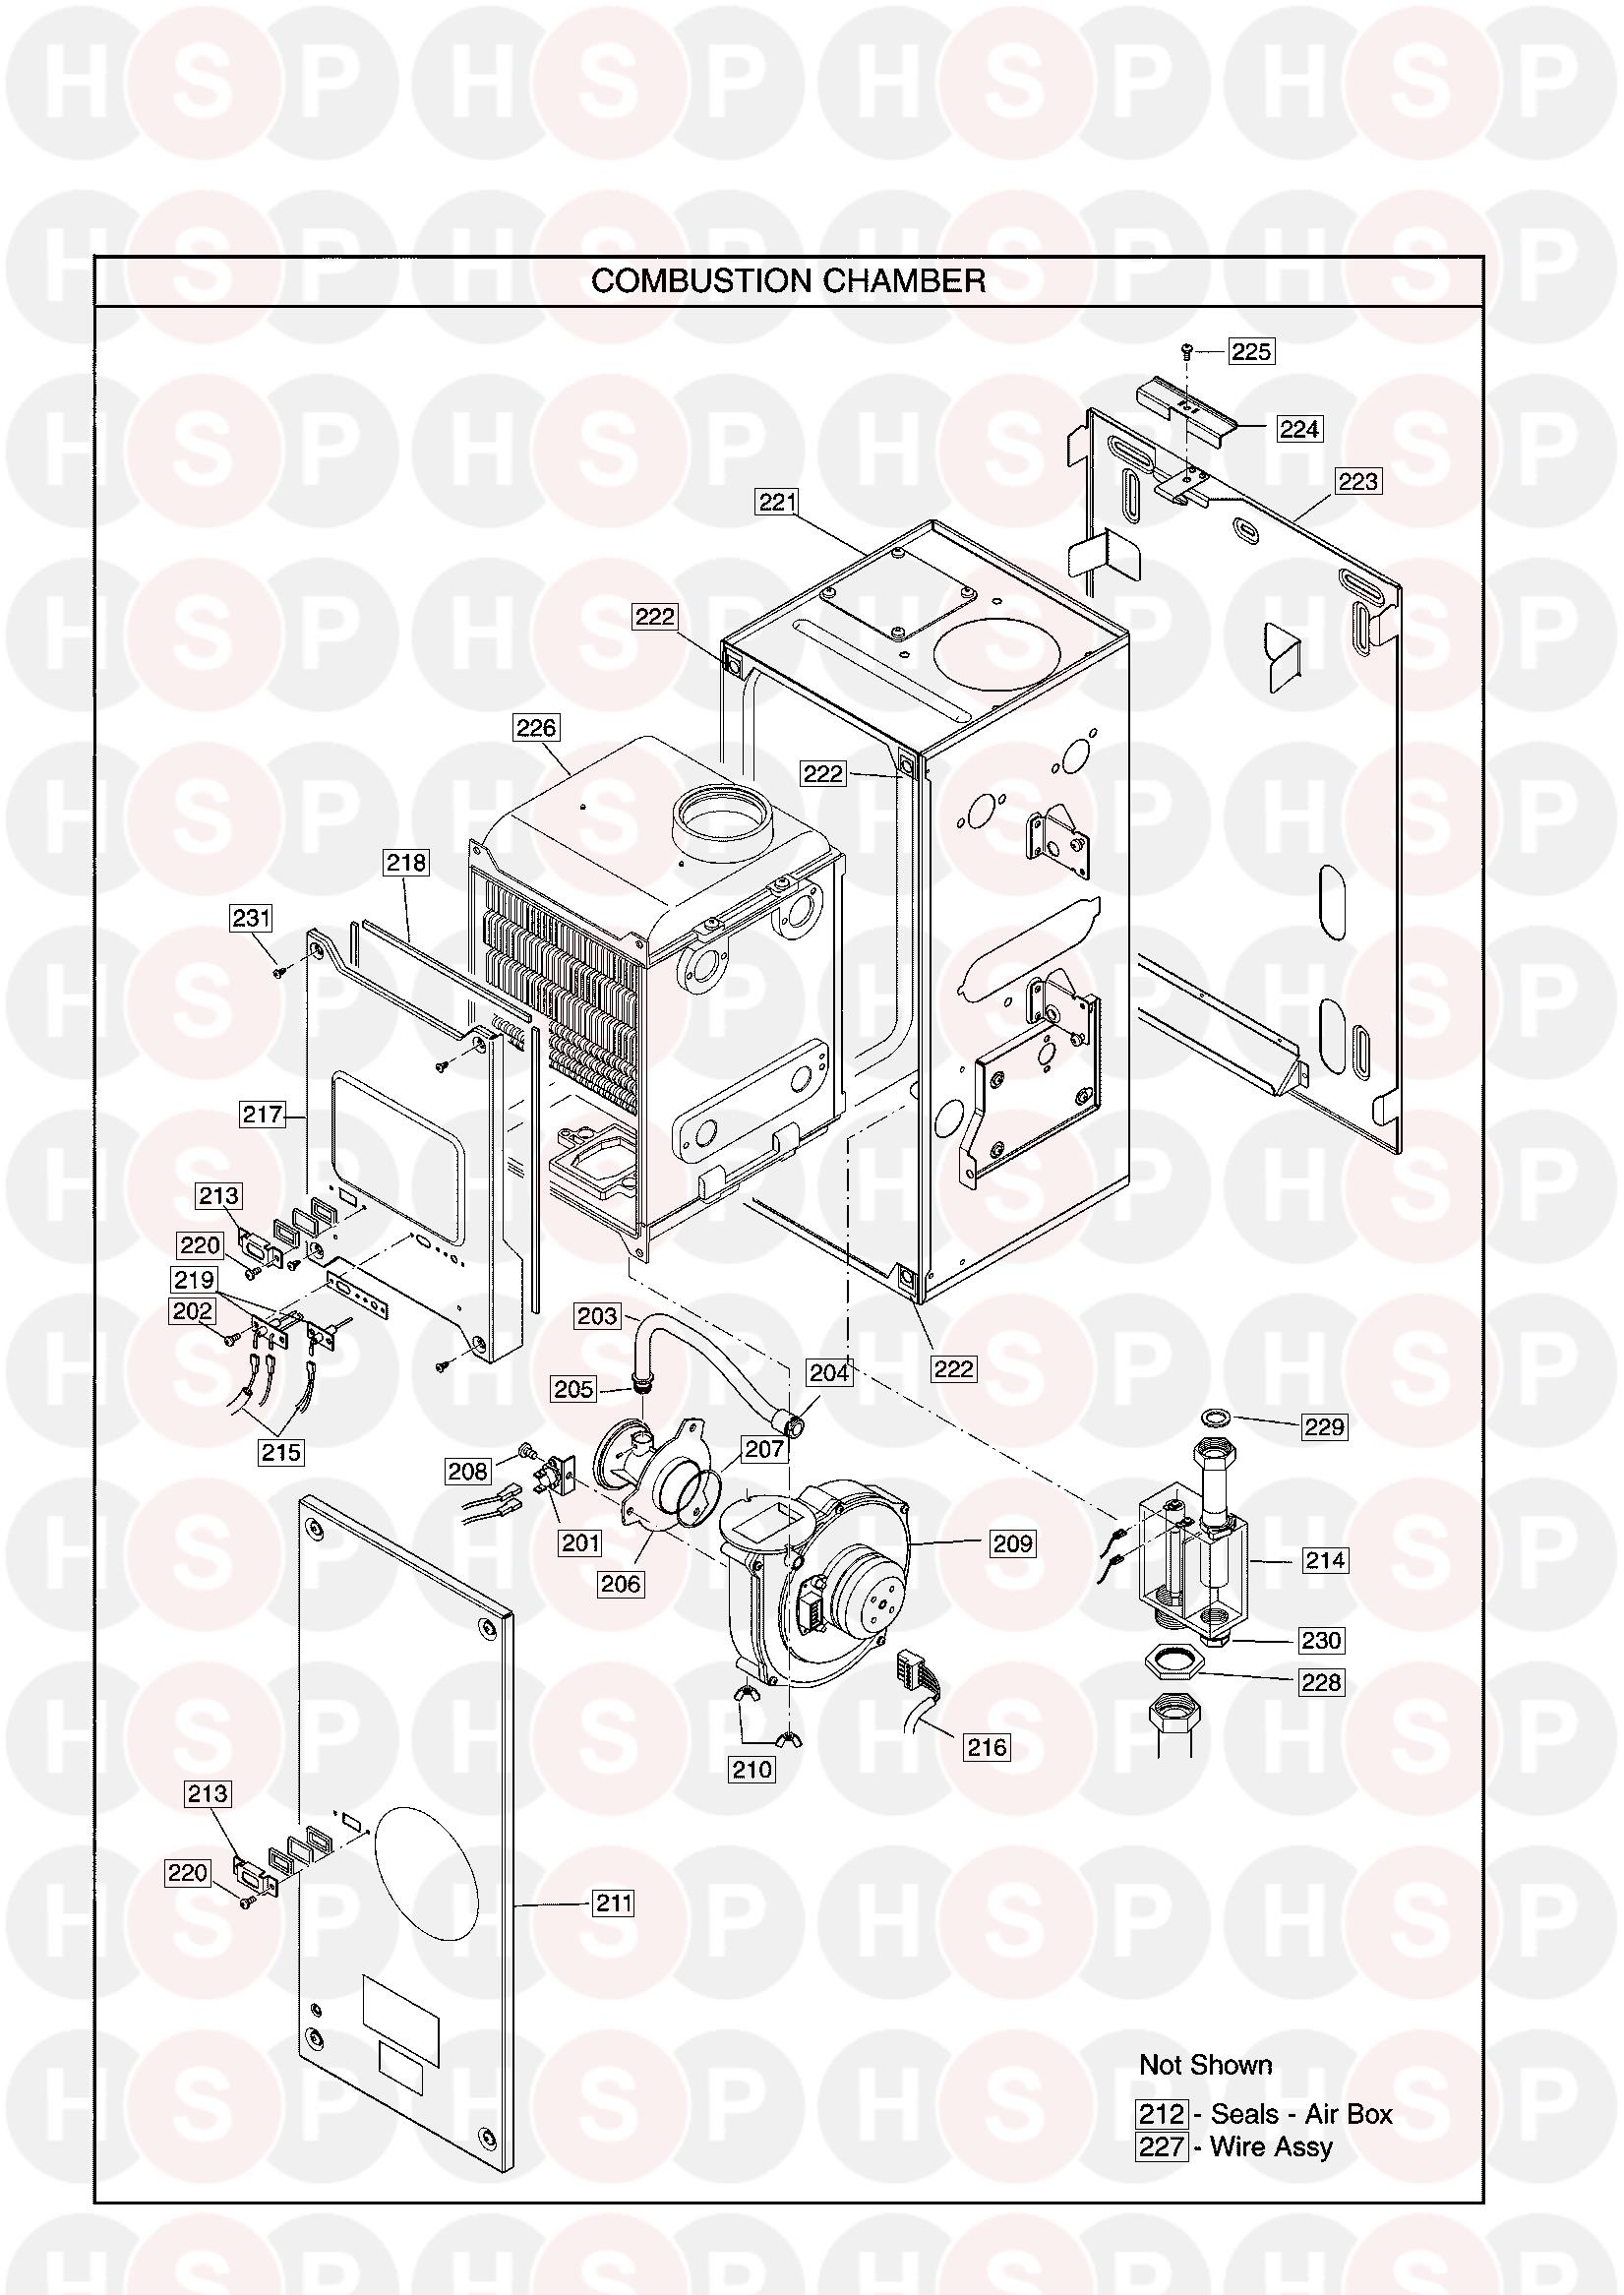 Potterton PROMAX 24 HE (Combustion Chamber) Diagram